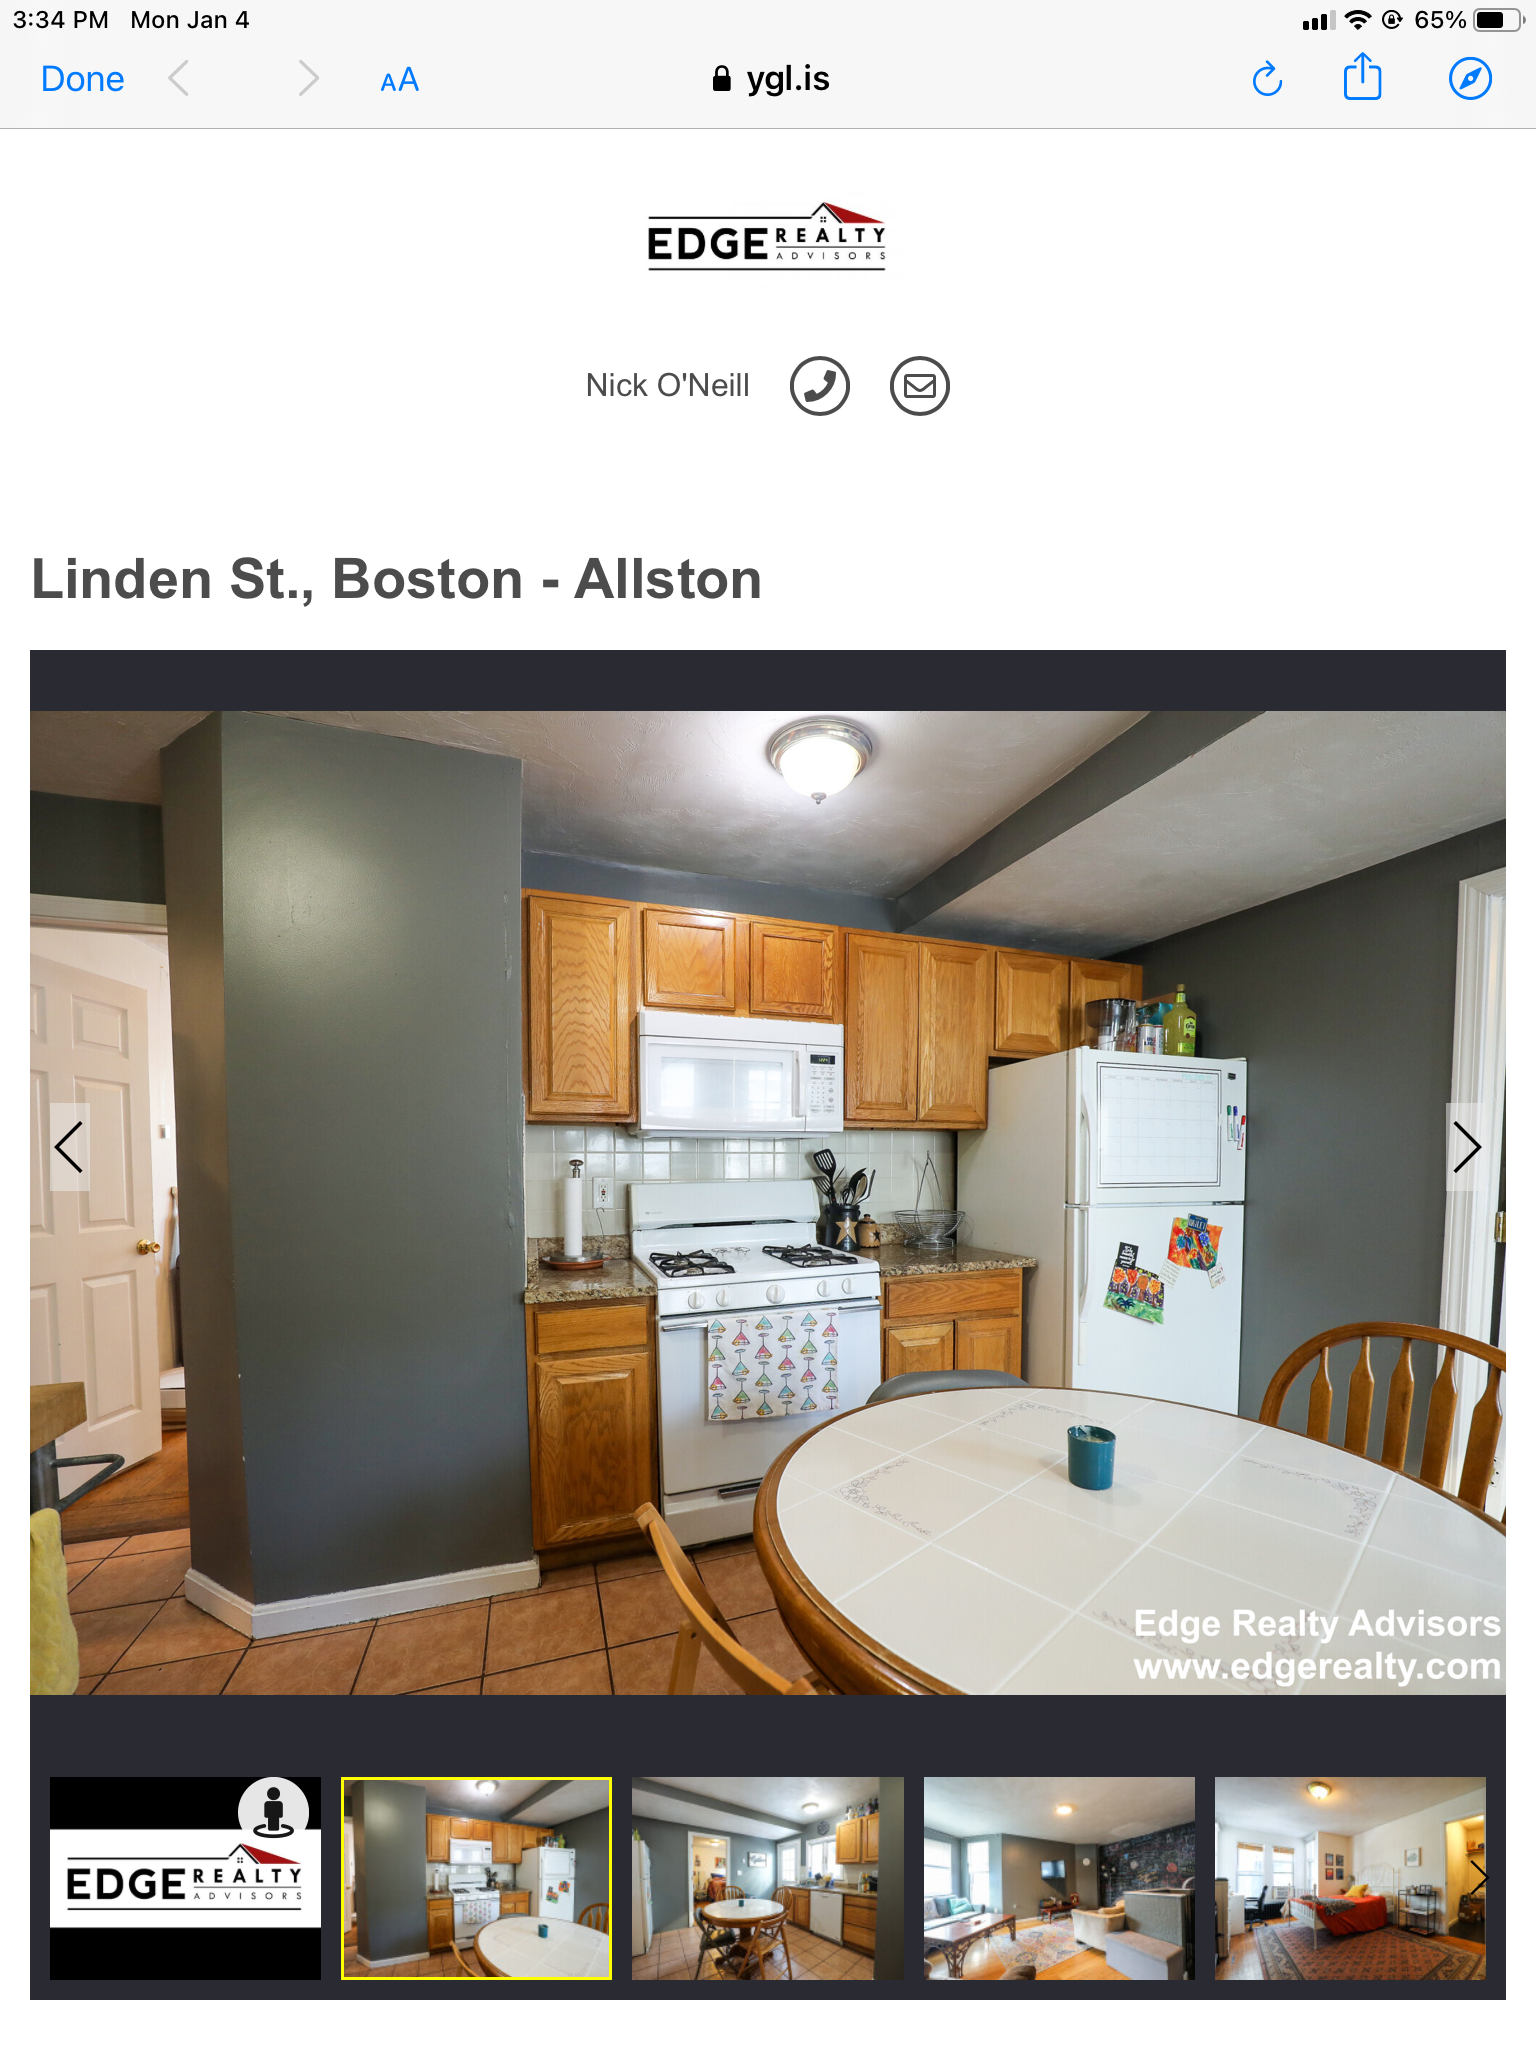 5 Beds, 3 Baths apartment in Boston, Allston for $4,500